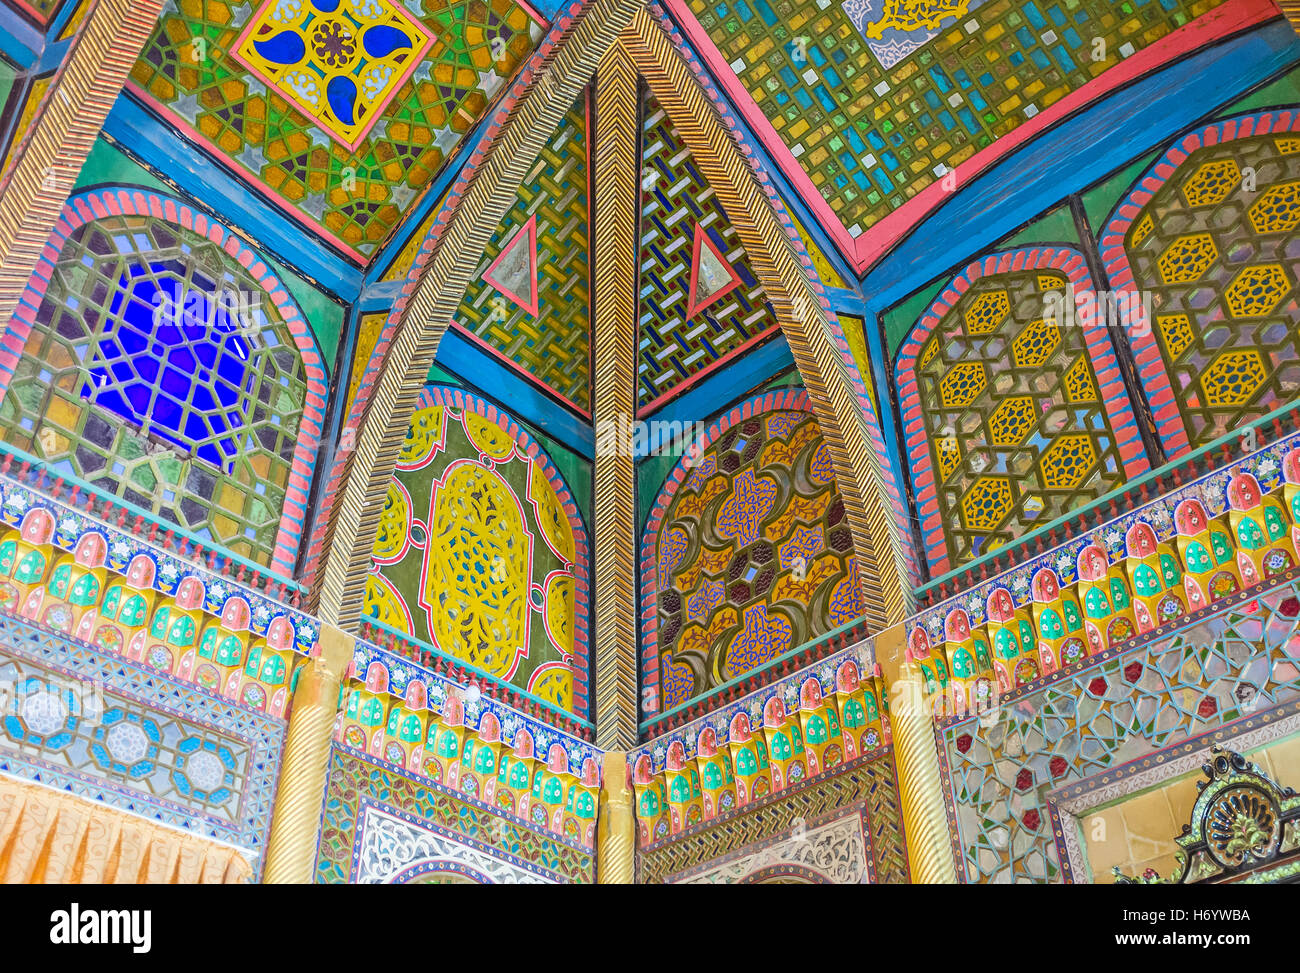 islamic architecture screens stock photos islamic architecture